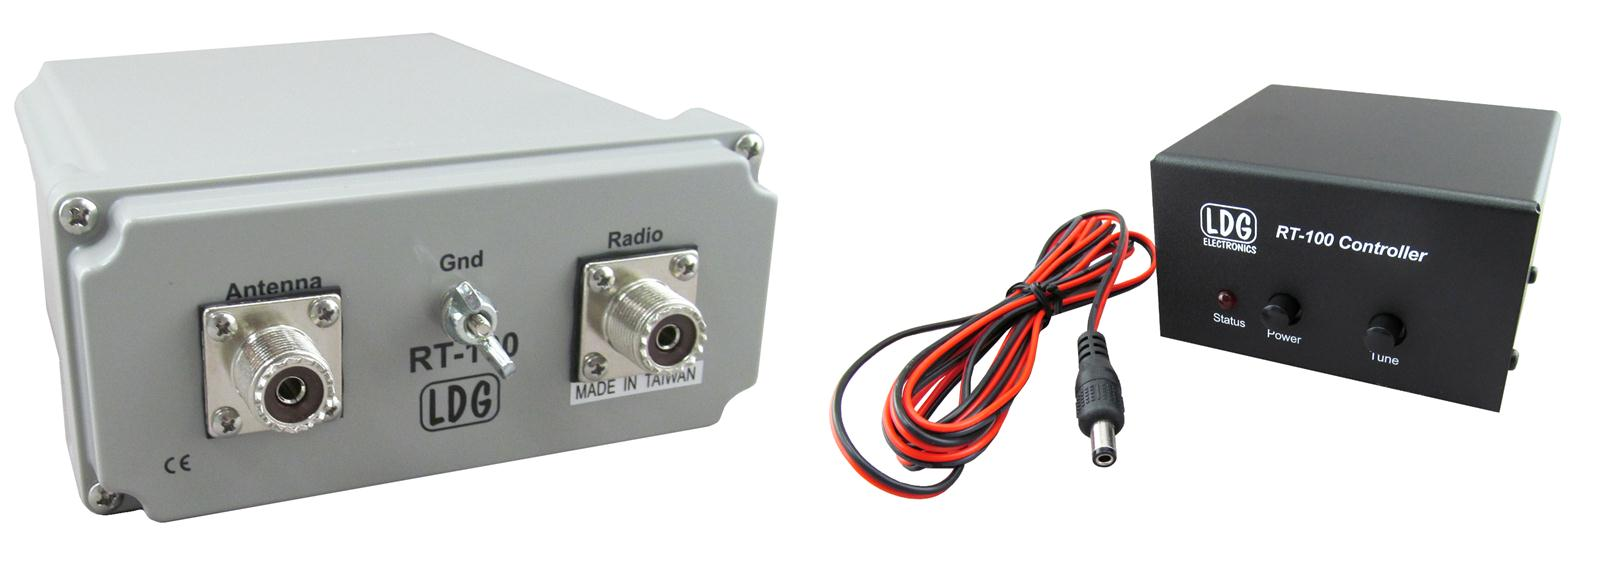 Ldg Electronics Rt 100 Combo Remote Antenna Tuners Rc Free Tuning Unit Shipping On Most Orders Over 99 At Dx Engineering